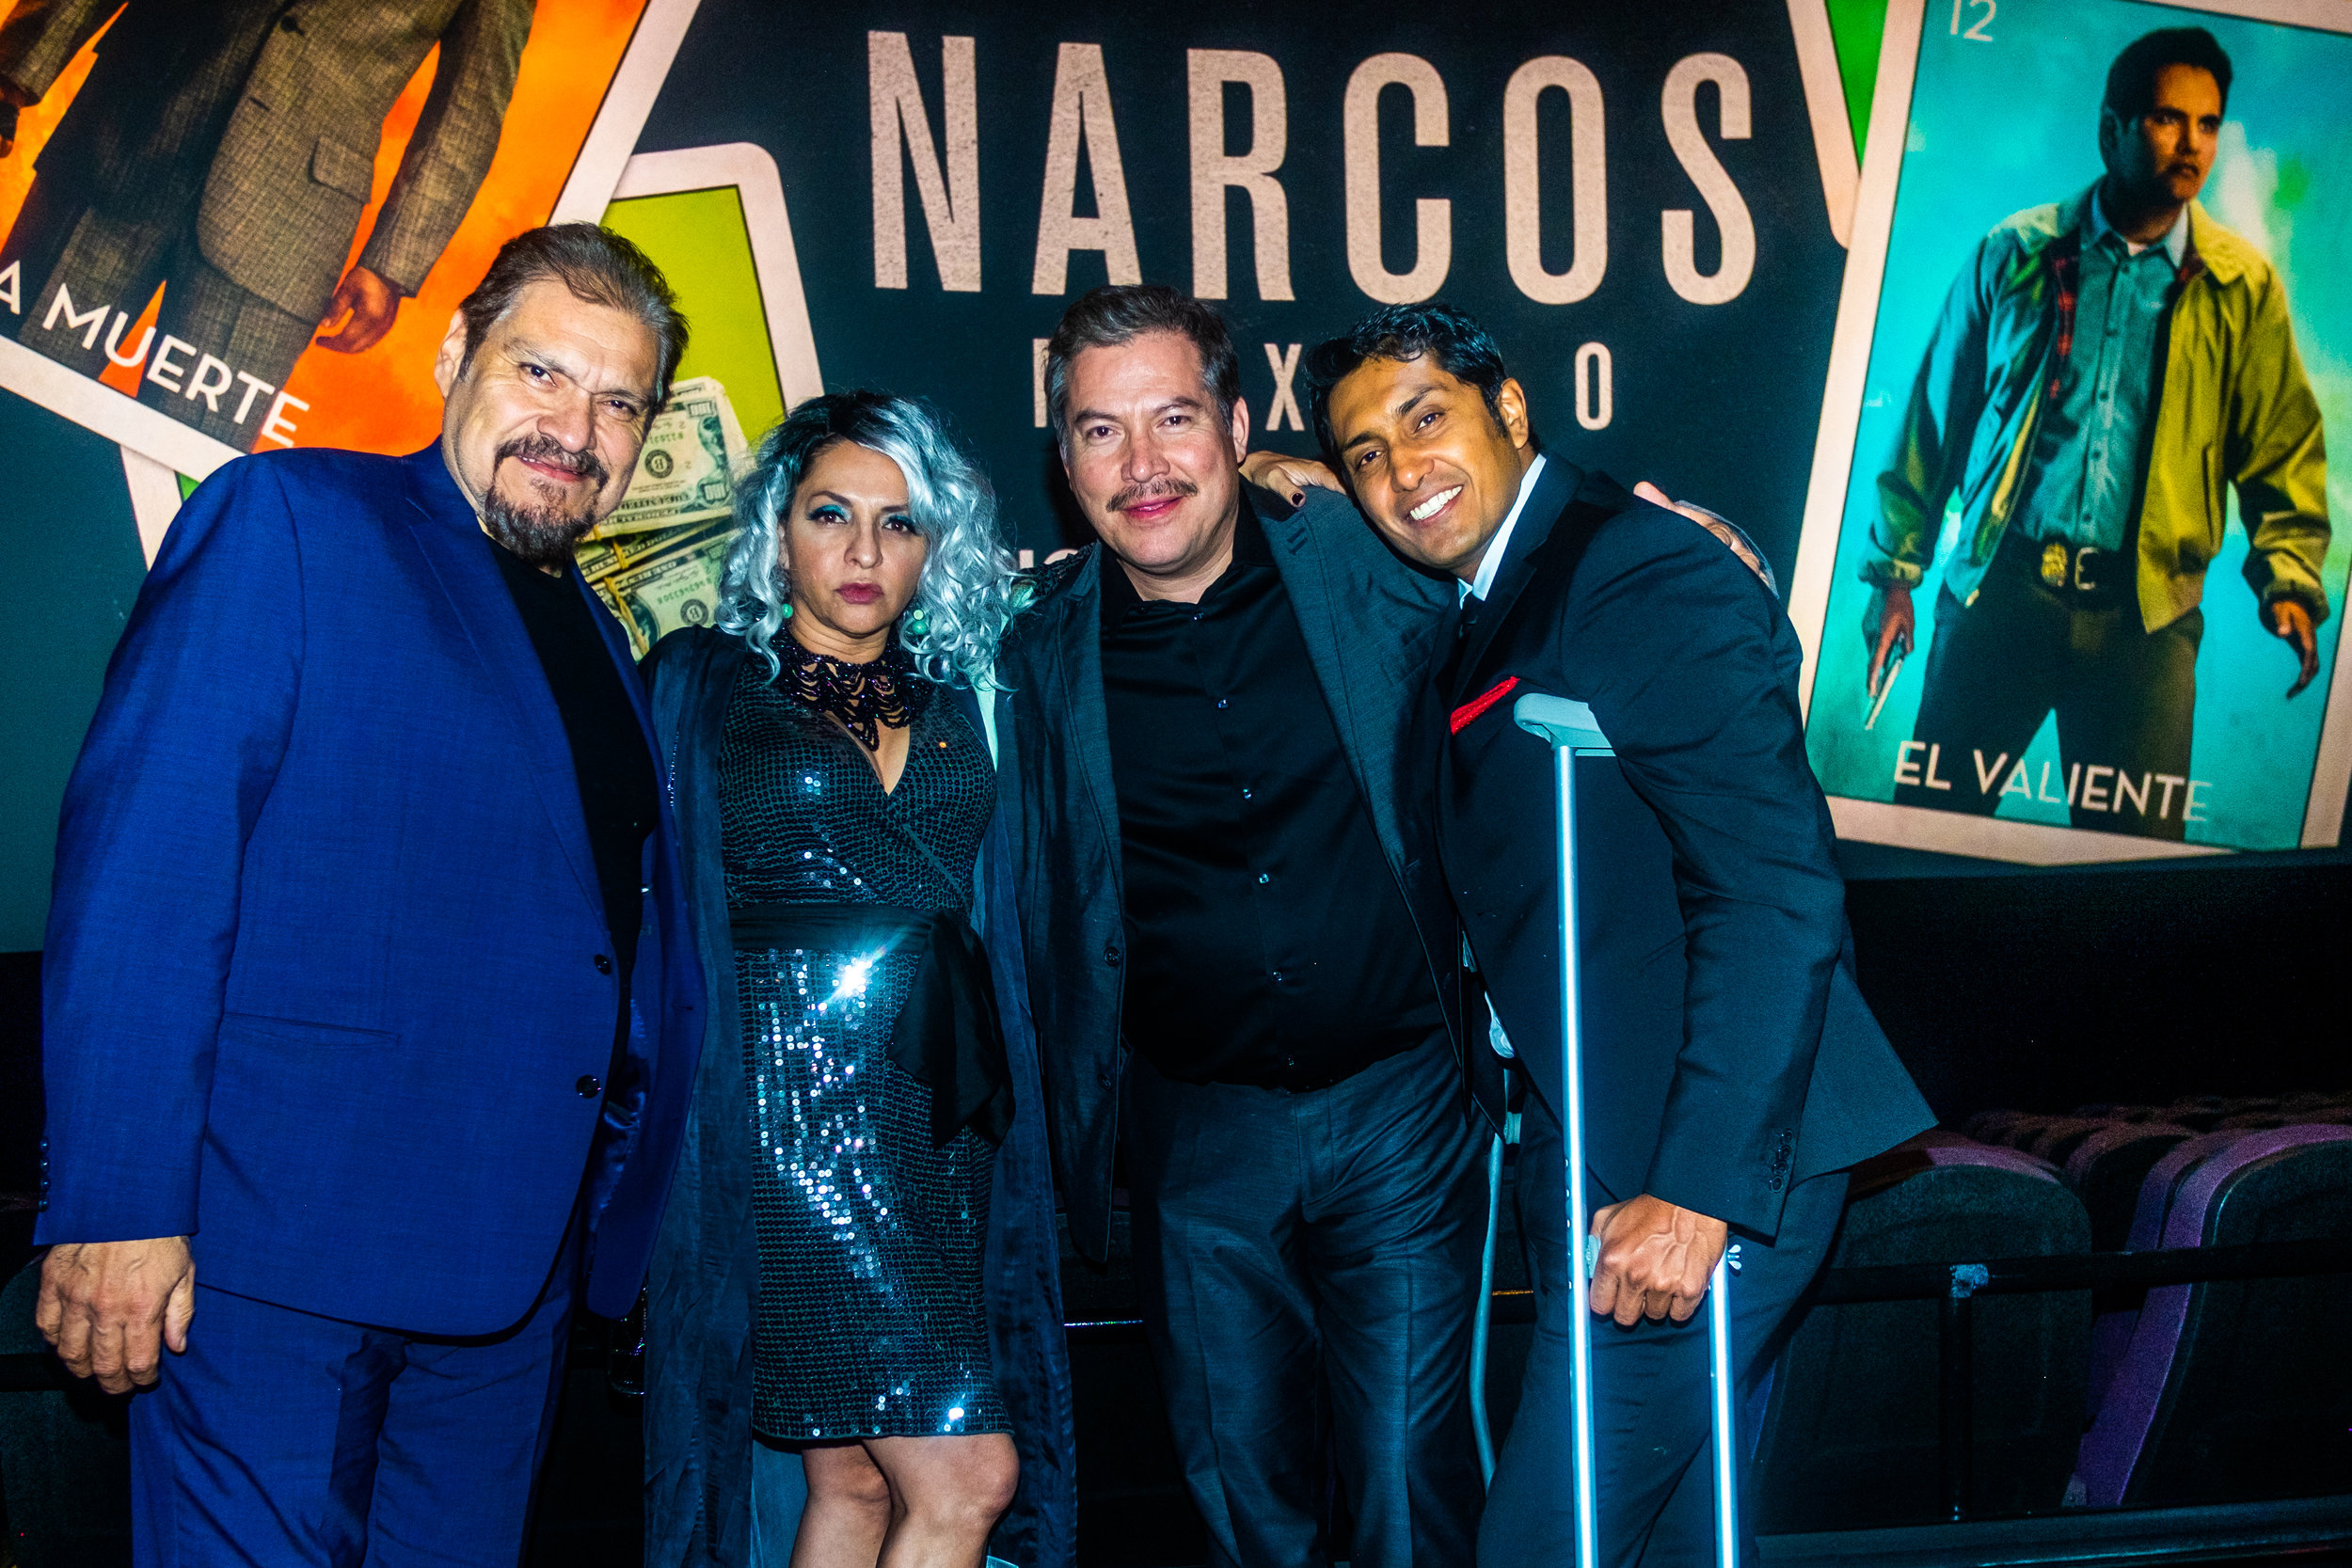 Narcos_after_party-13.jpg